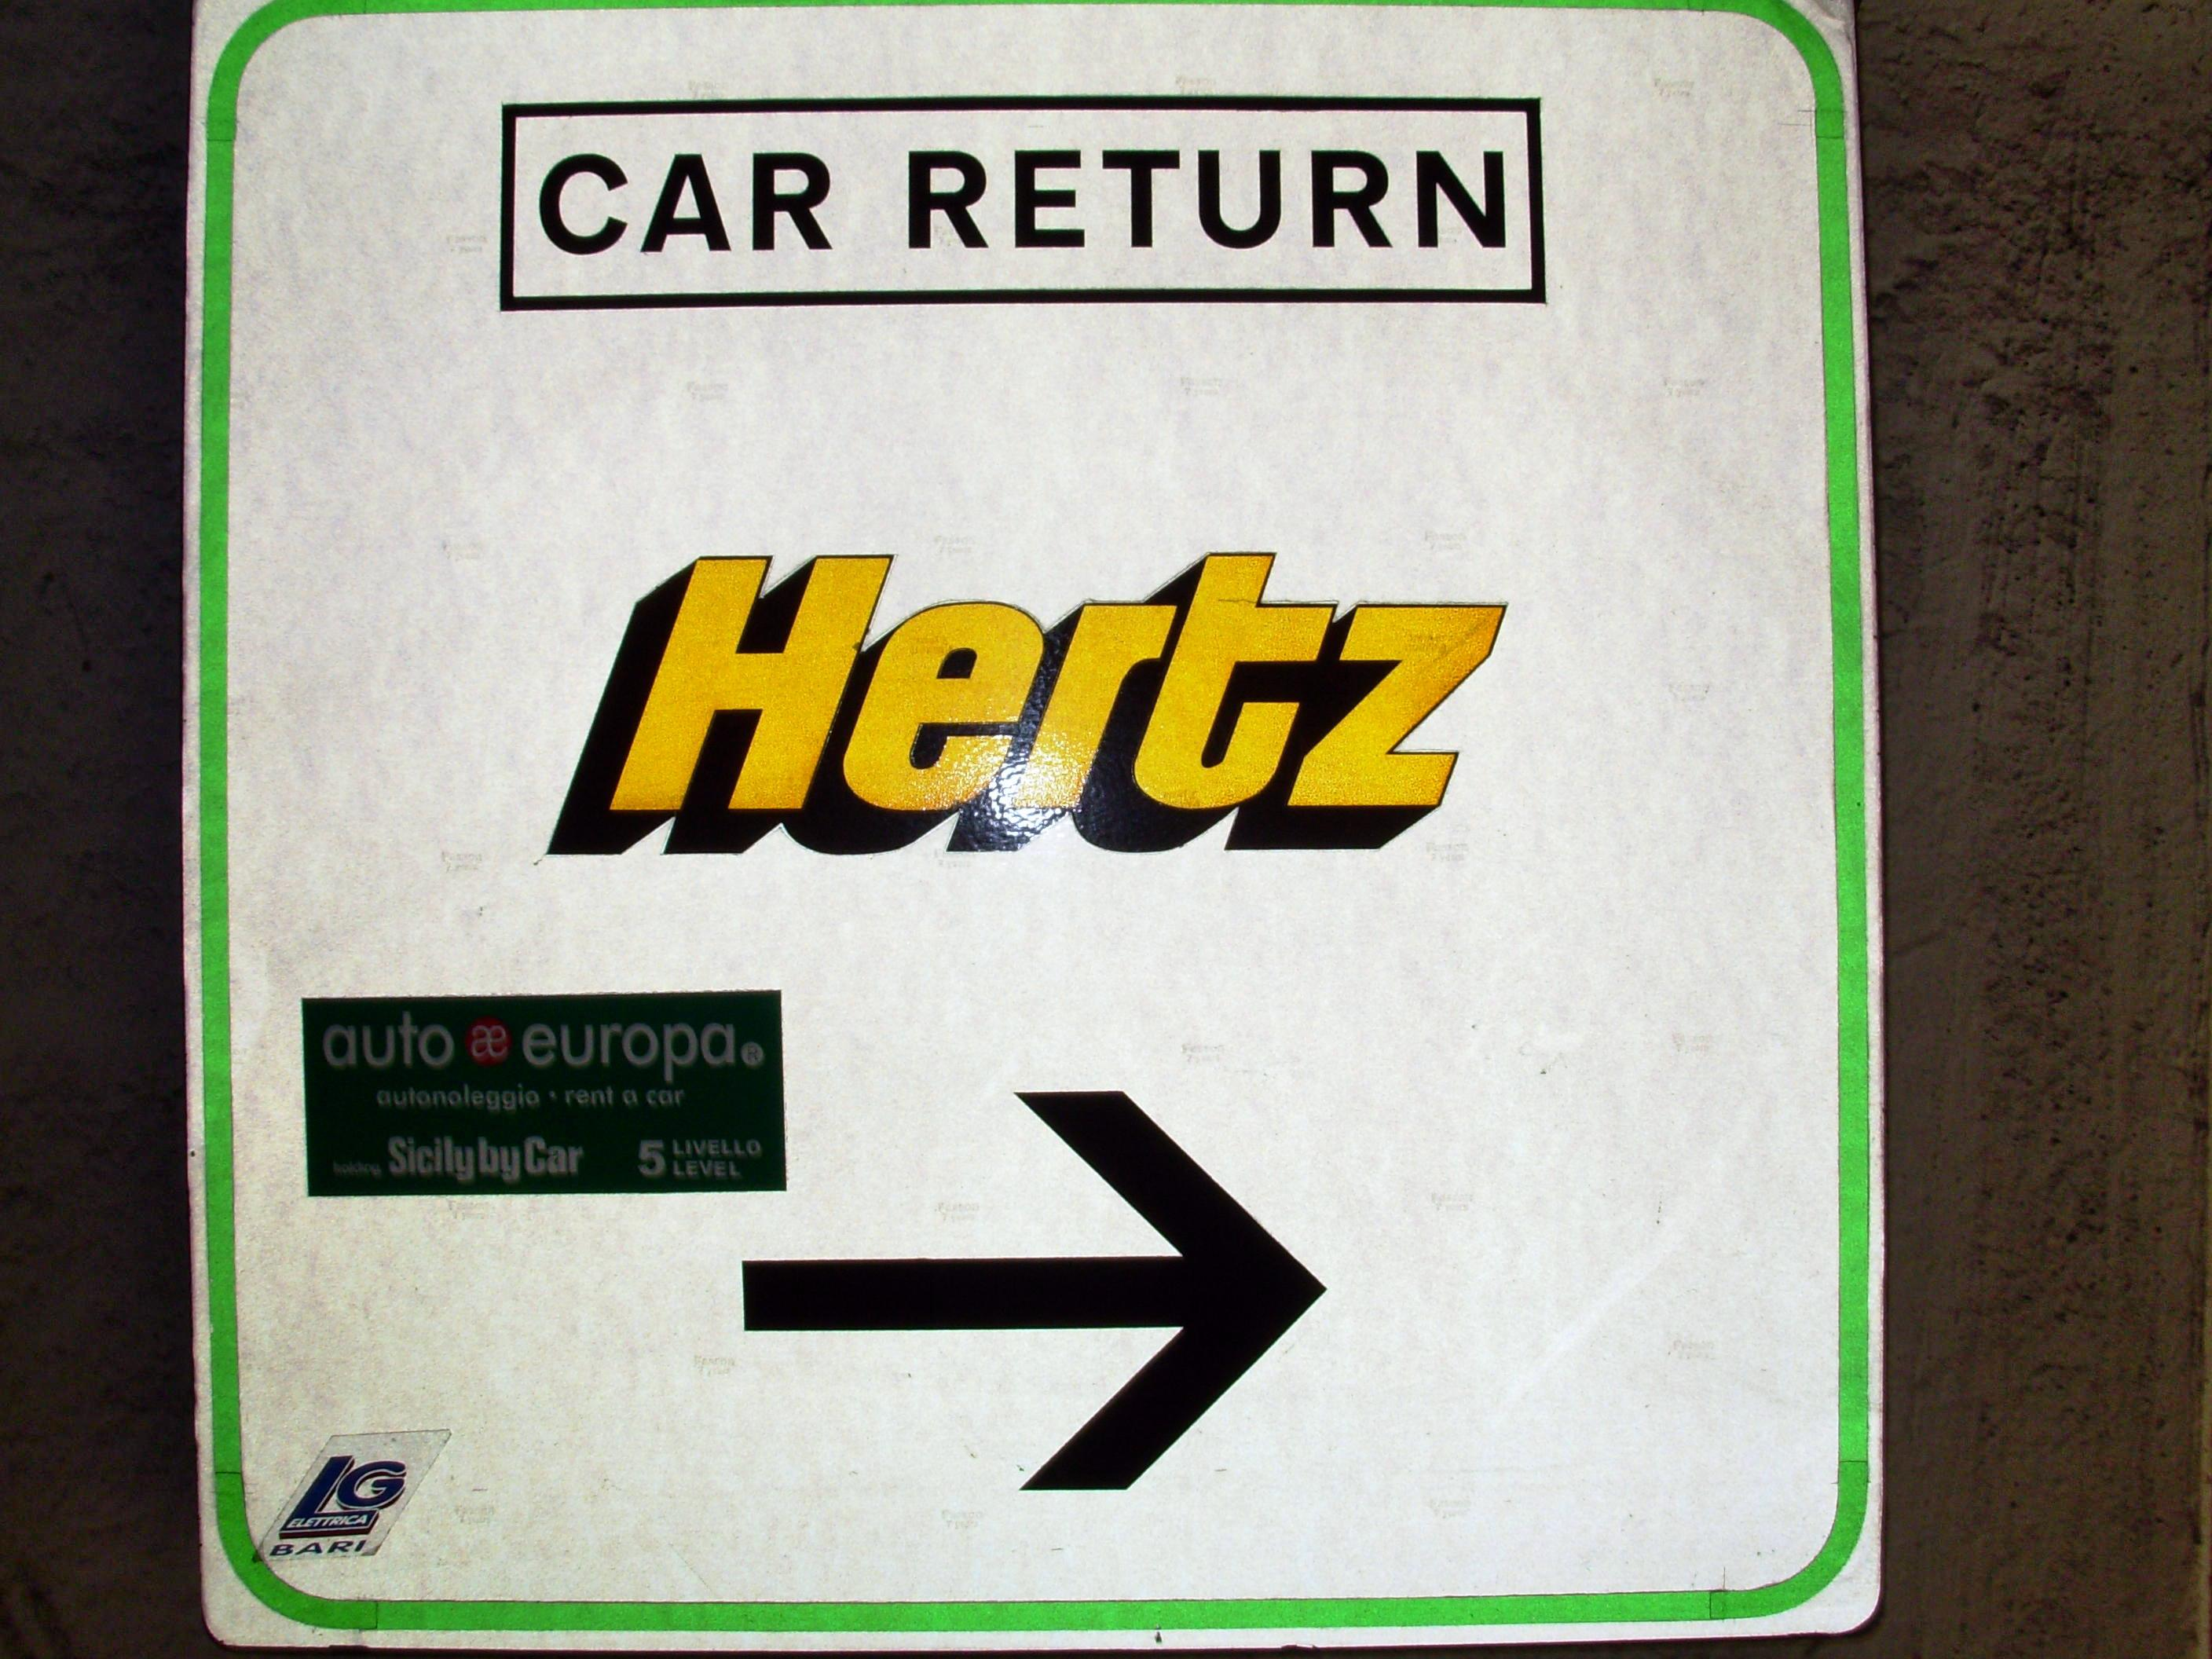 Car-return-1.jpeg